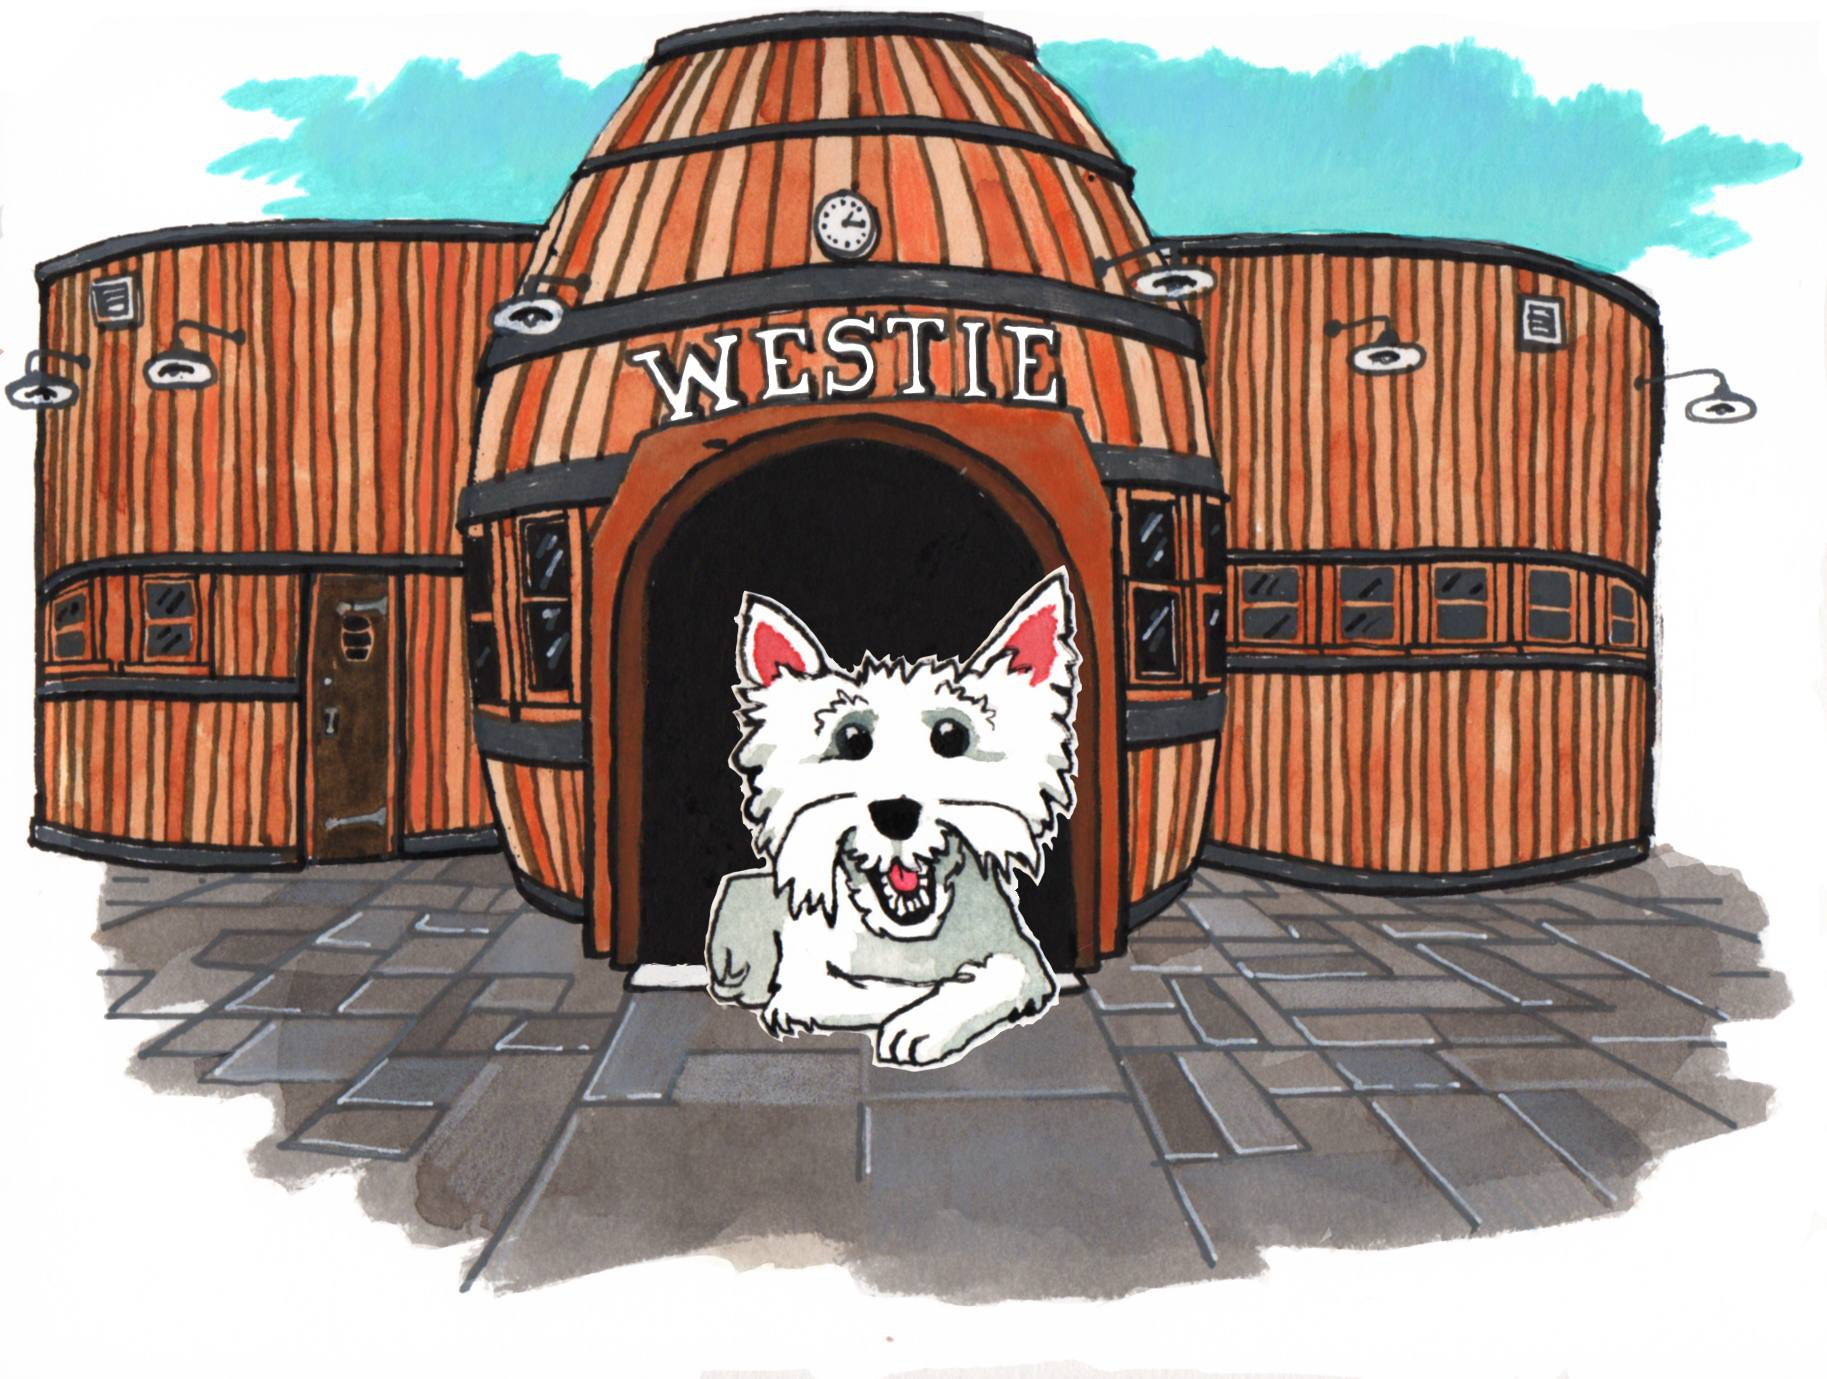 Westie at Idle Hour in North Hollywood | Illustration by Max Kornell